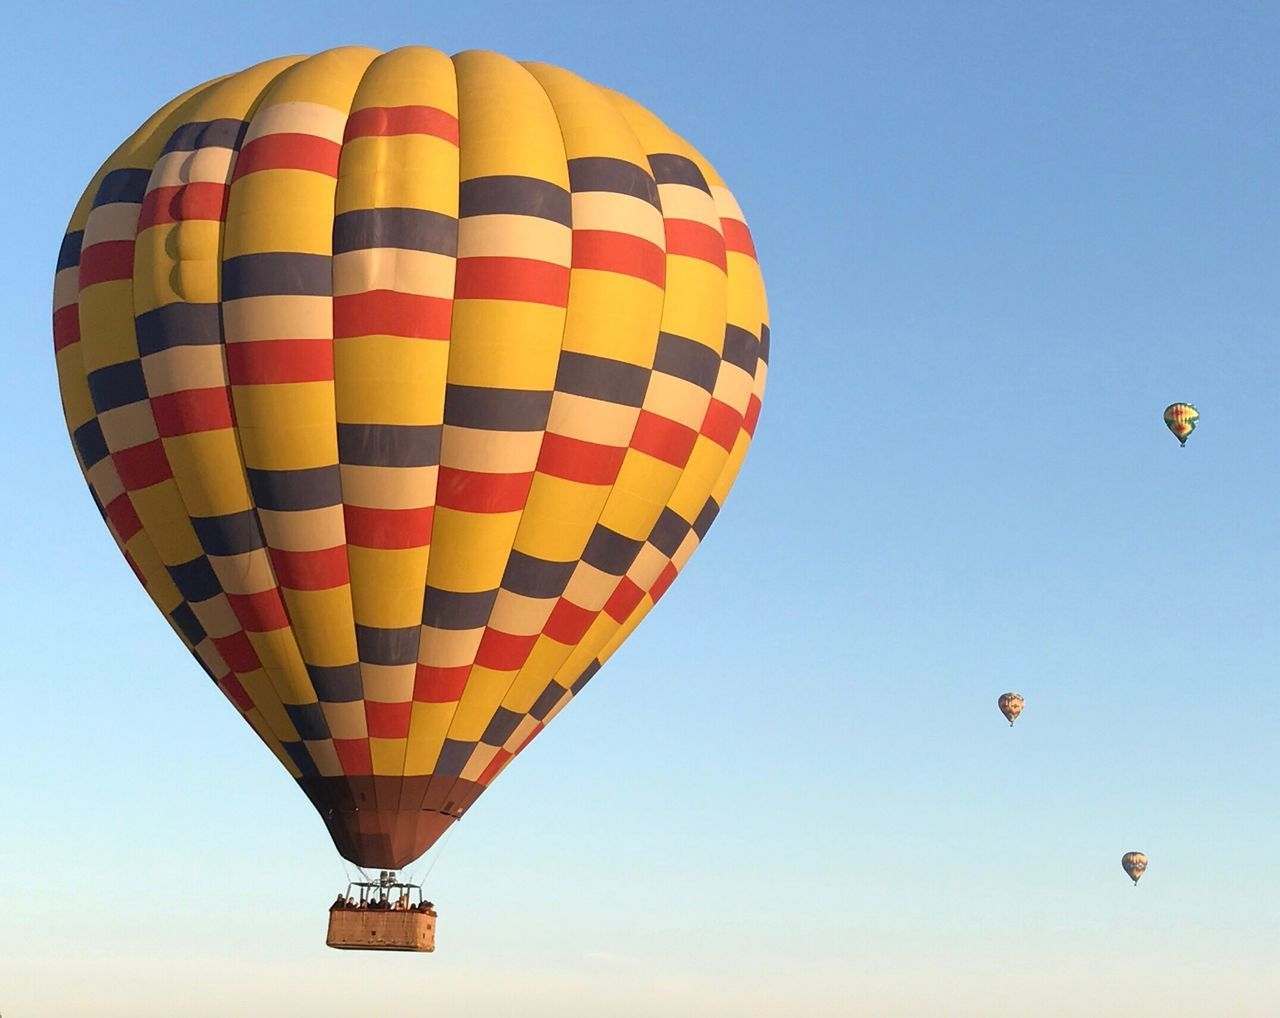 Hot air balloon ride! Clear Sky Transportation Adventure Flying Hot Air Balloon Travel Mid-air Multi Colored Parachute Blue Leisure Activity Recreational Pursuit Air Vehicle Journey Getting Away From It All Yellow Outdoor Pursuit Exploration Vacations